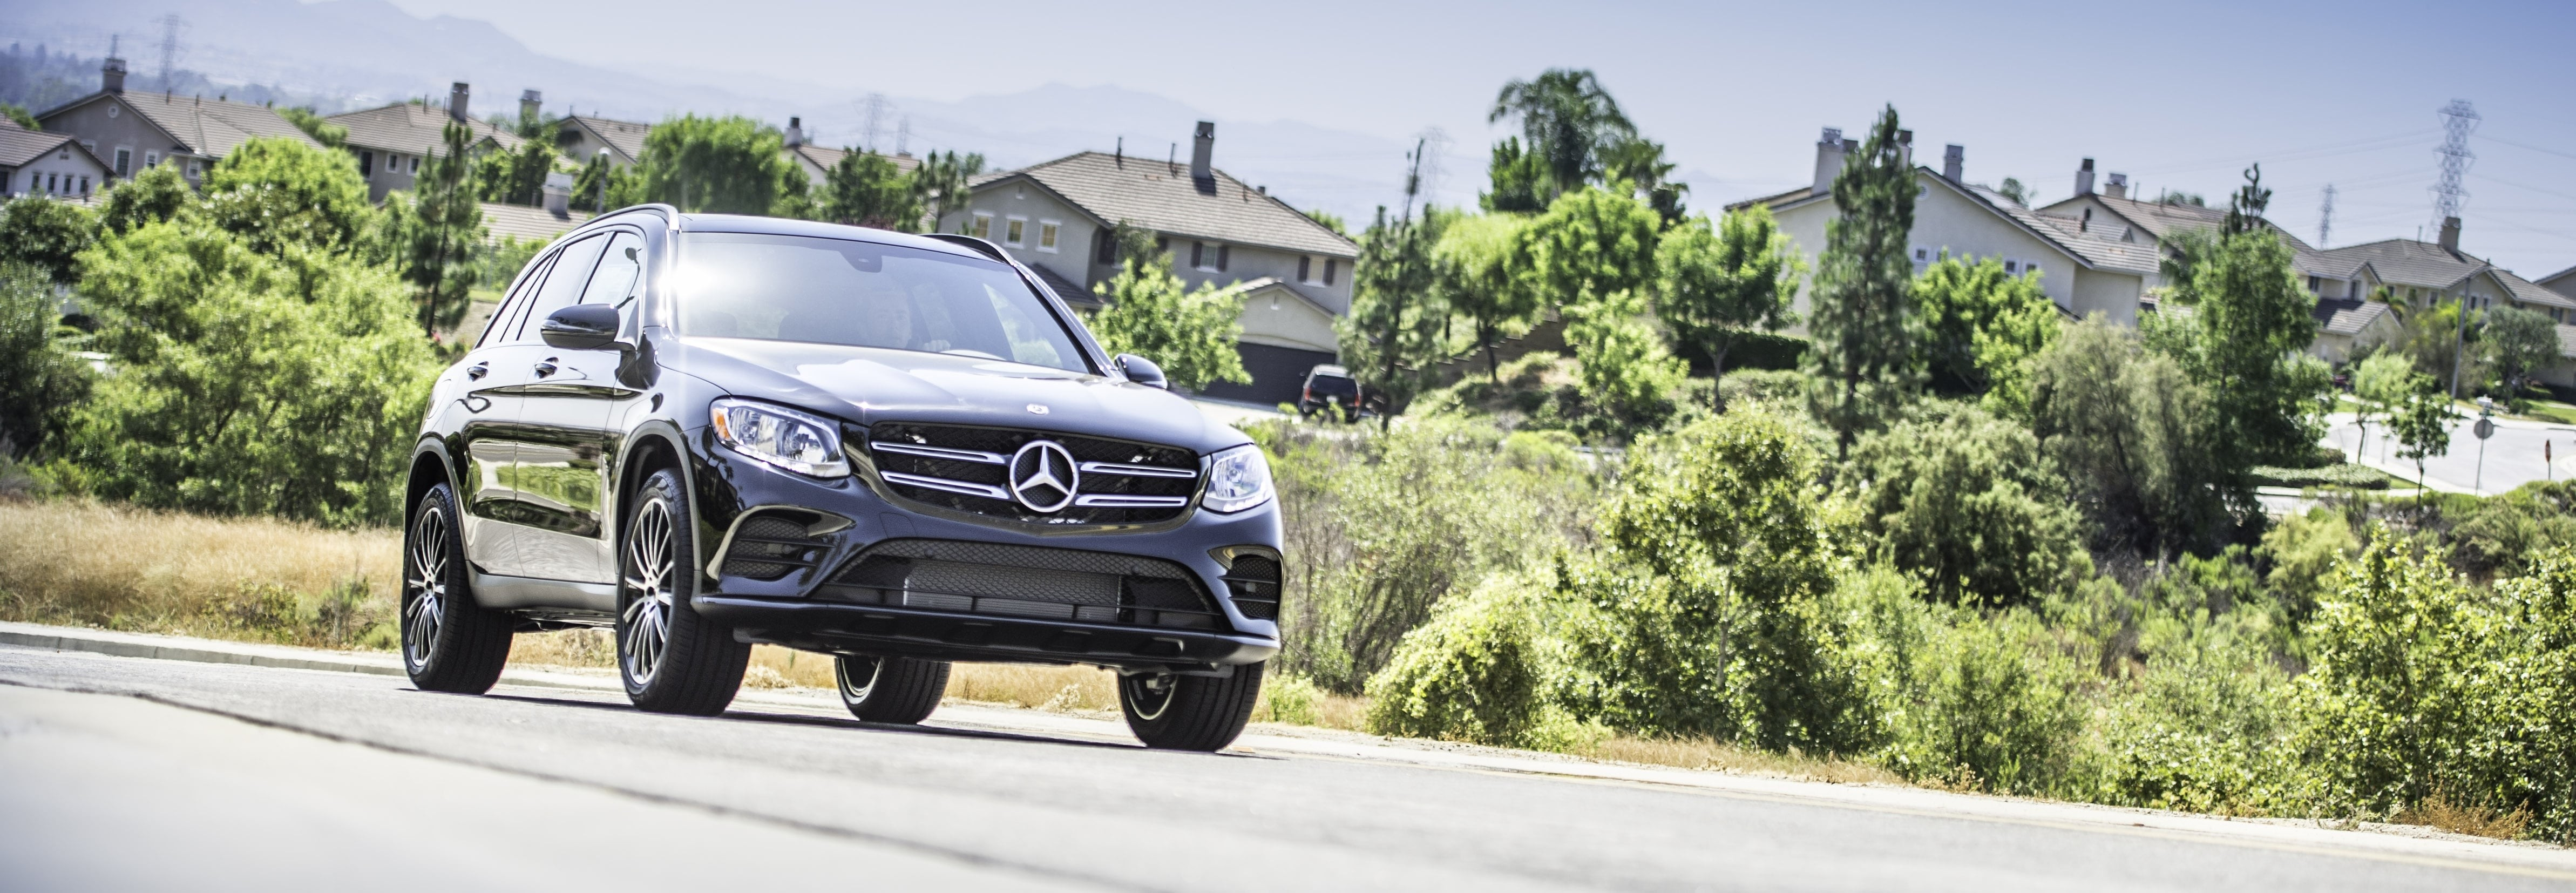 Oem mercedes parts and accessories mercedes benz of ontario for Mercedes benz ontario dealers